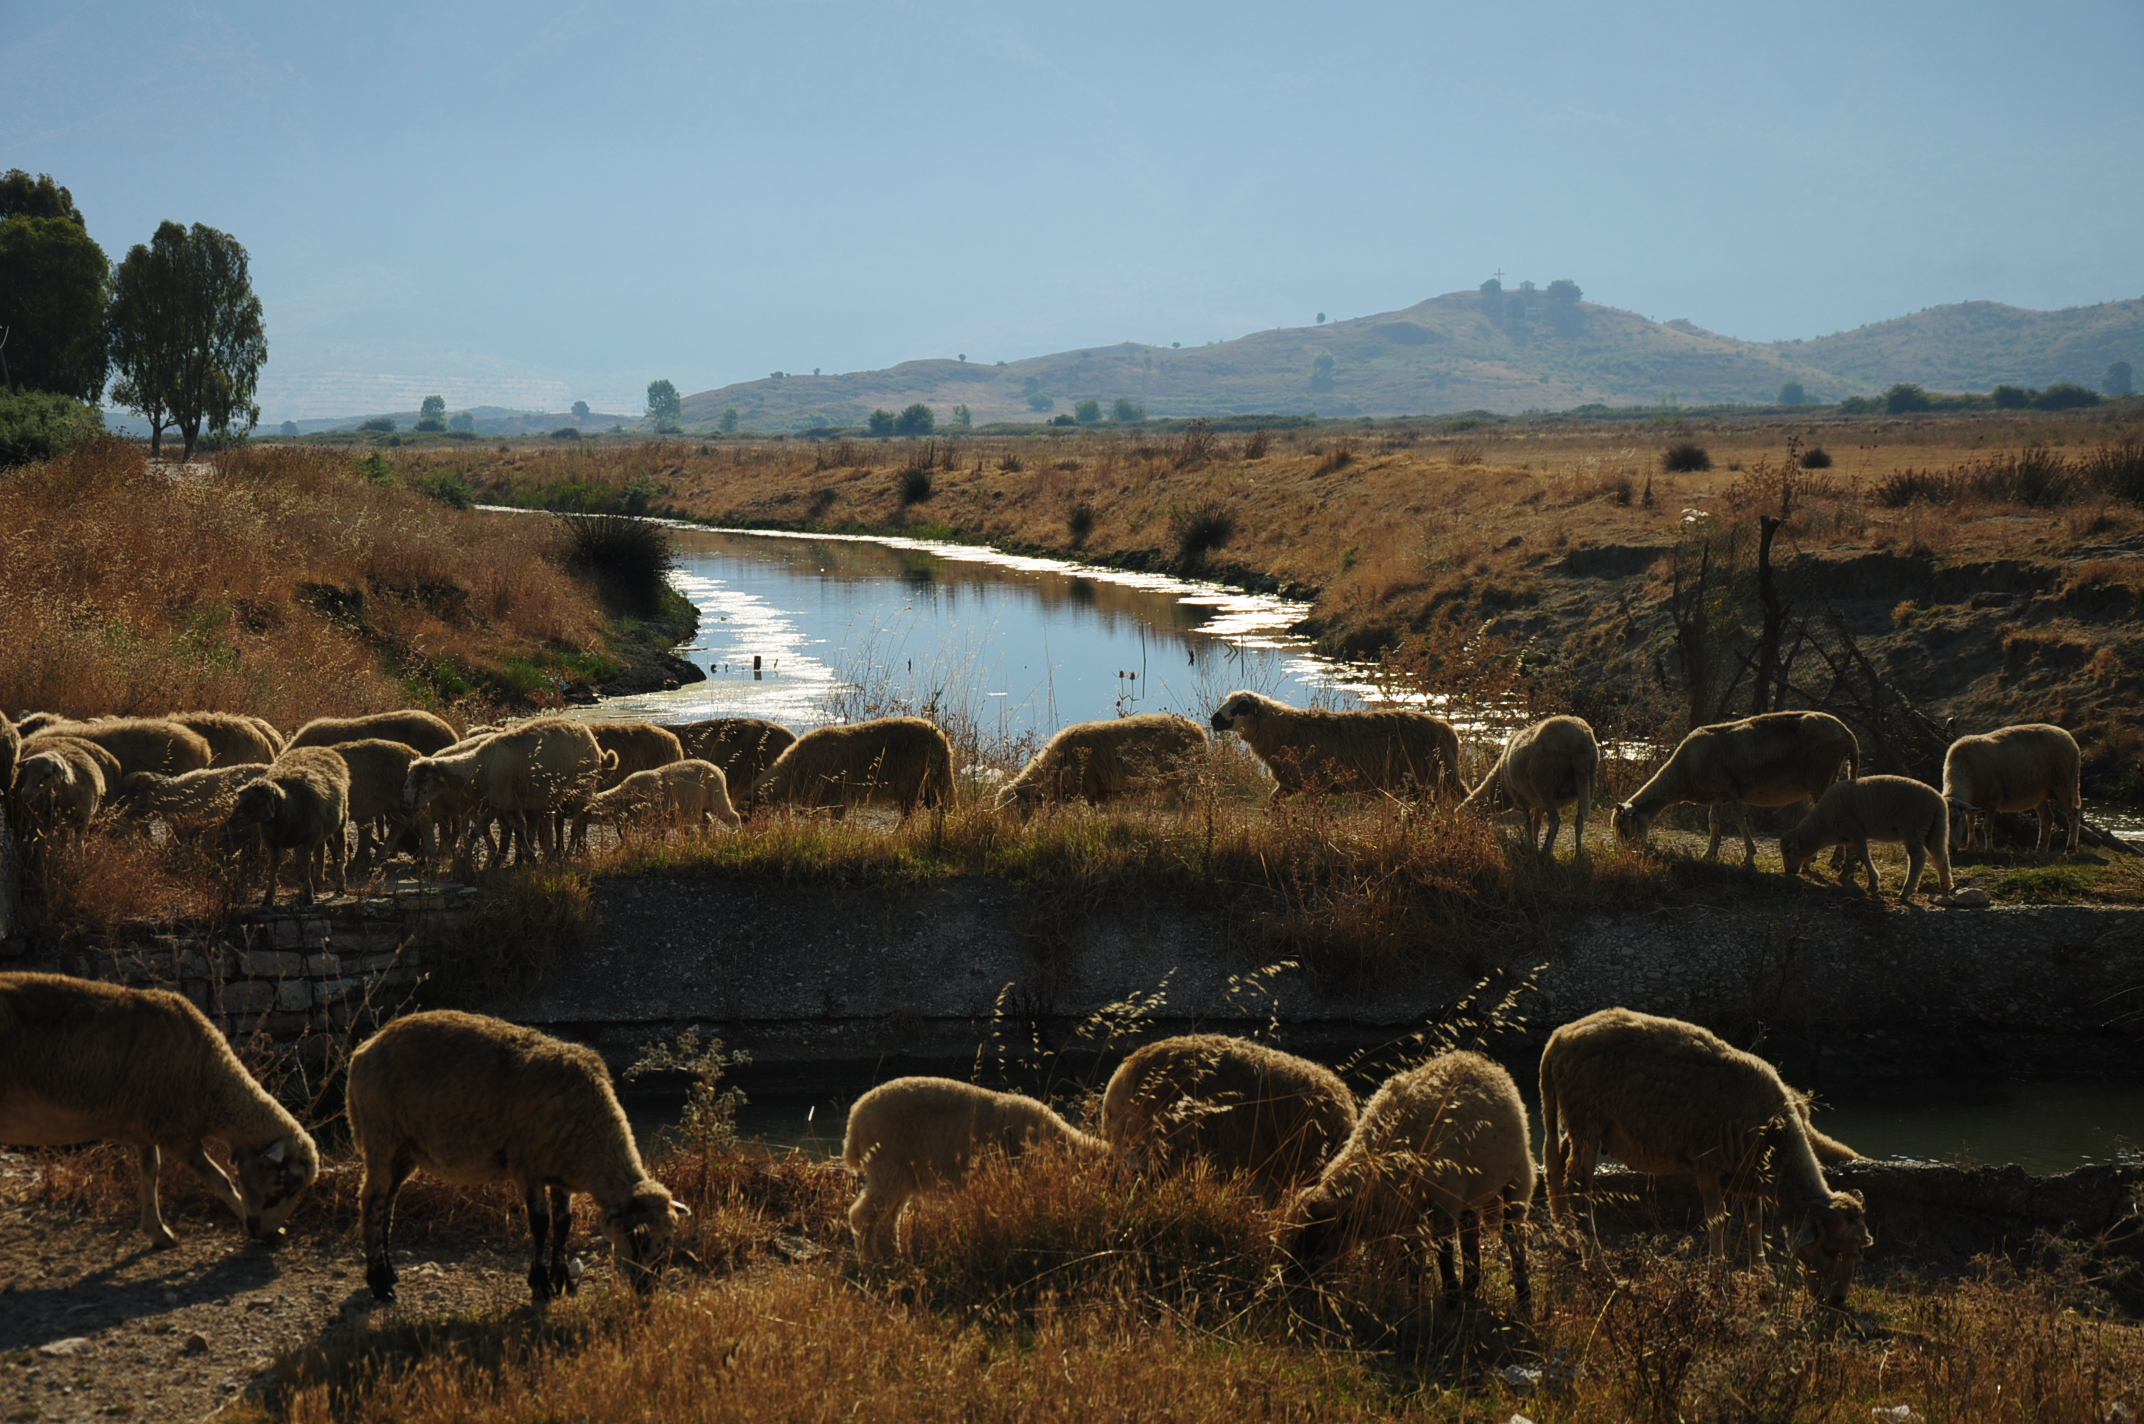 Rural idyll near Butrint